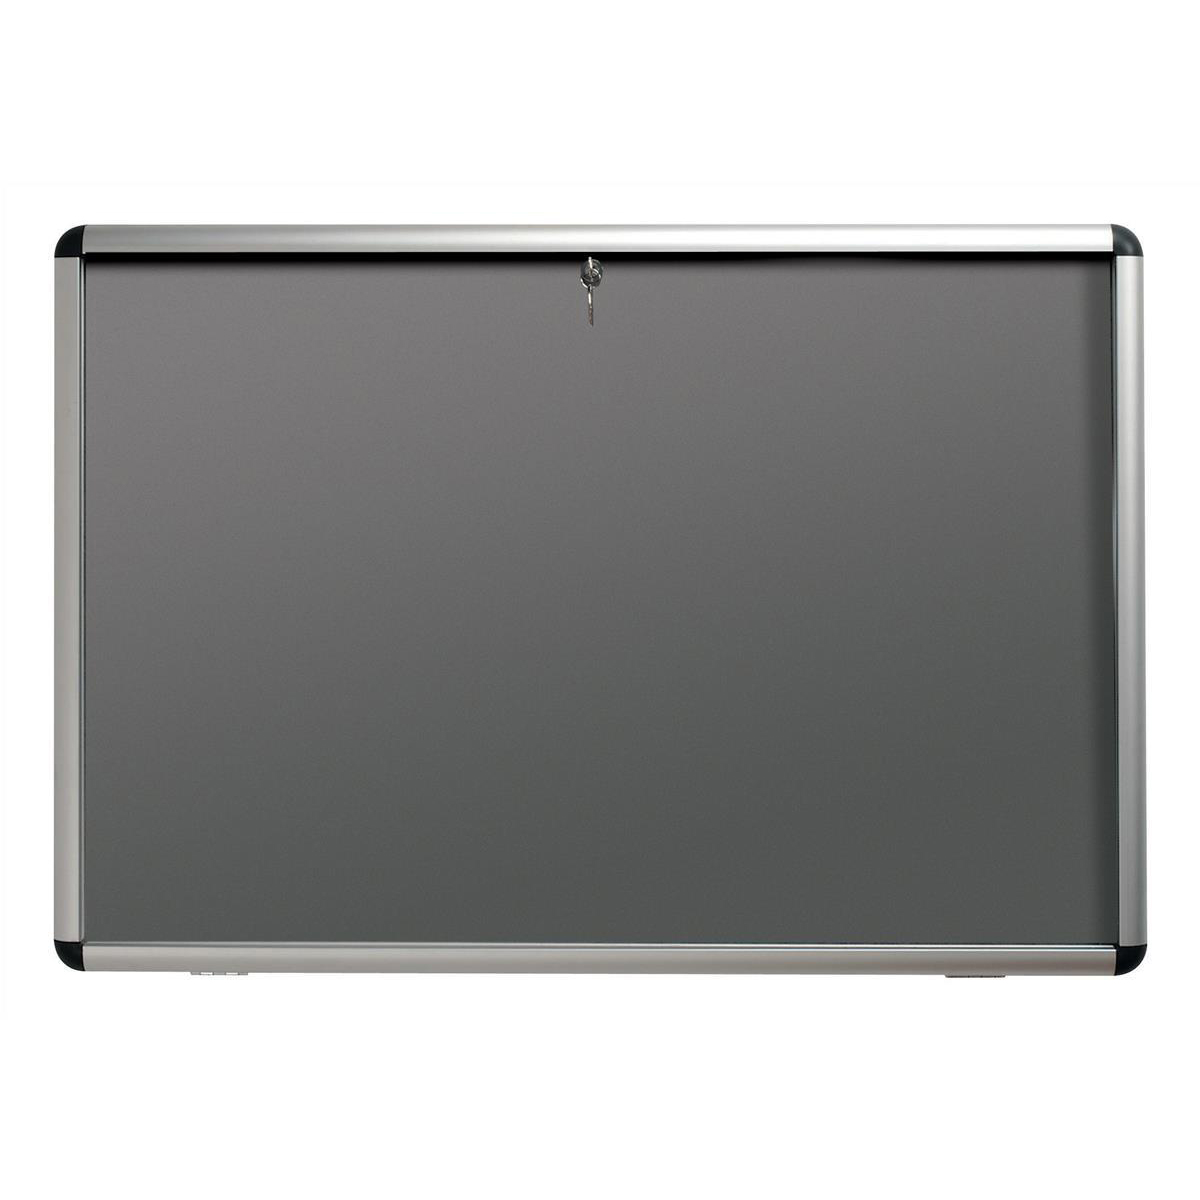 Nobo Display Cabinet Noticeboard Visual Insert Lockable A1 W907xH661mm Grey Ref 31333500